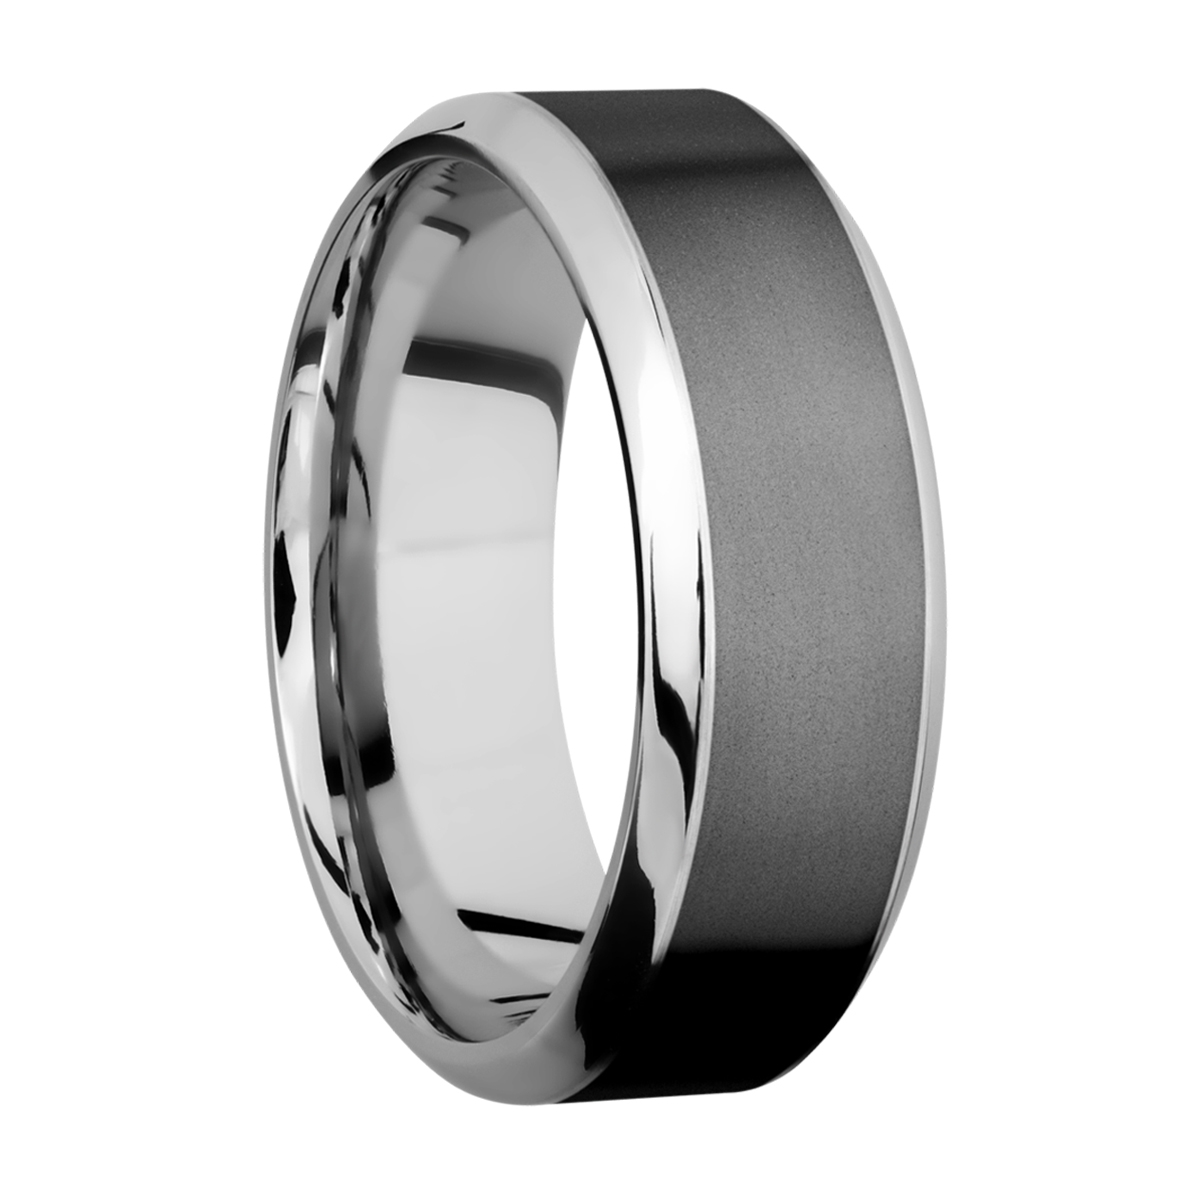 Lashbrook CCPF8HB15/ZIRCONIUM Cobalt Chrome Wedding Ring or Band Alternative View 1